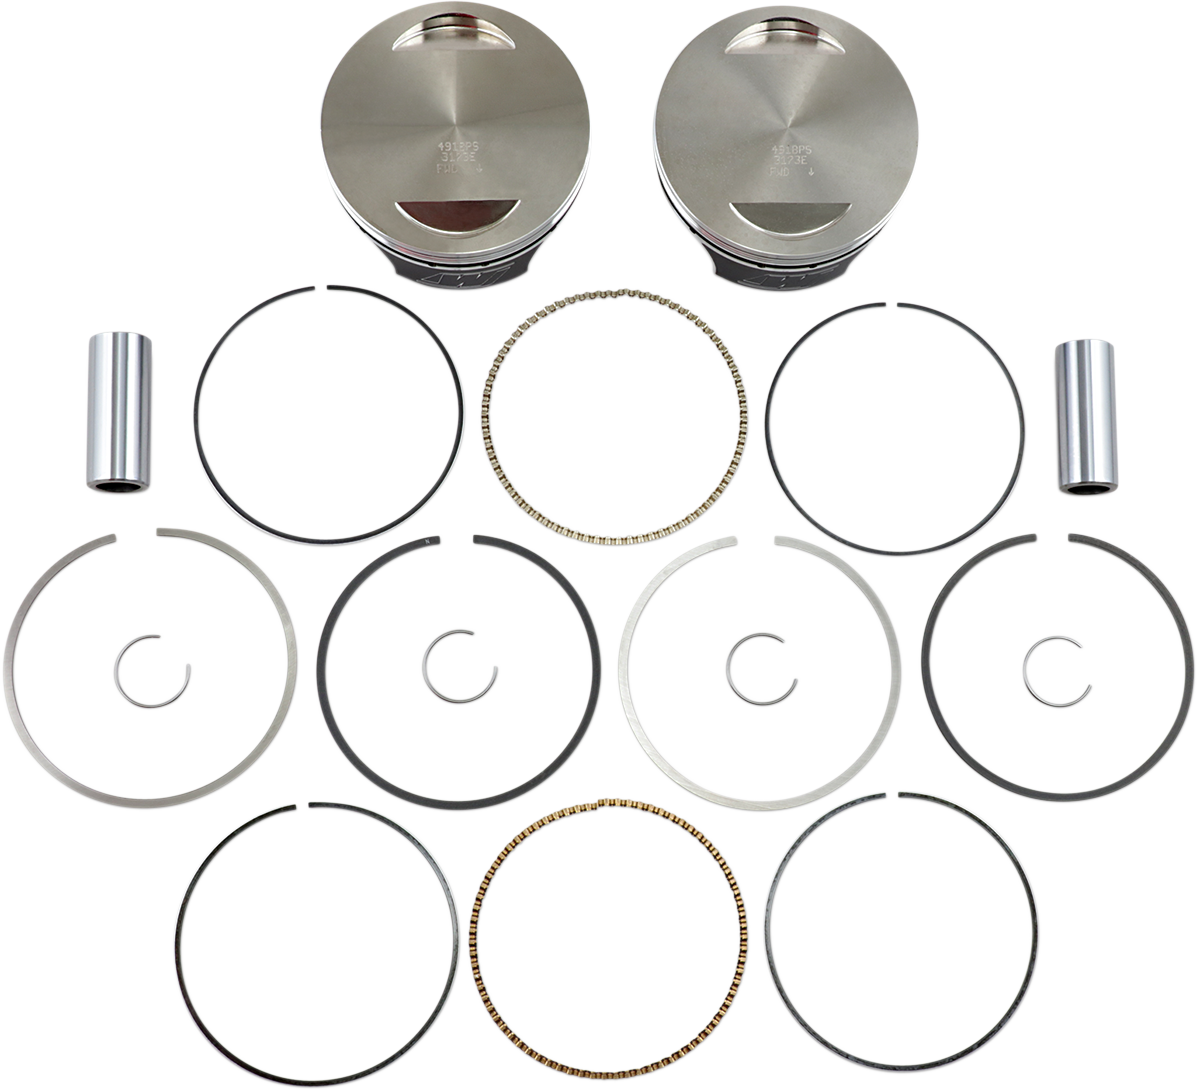 Wiseco High Performance Forged Piston Kit 07-17 Harley Softail Touring FLHX FLS